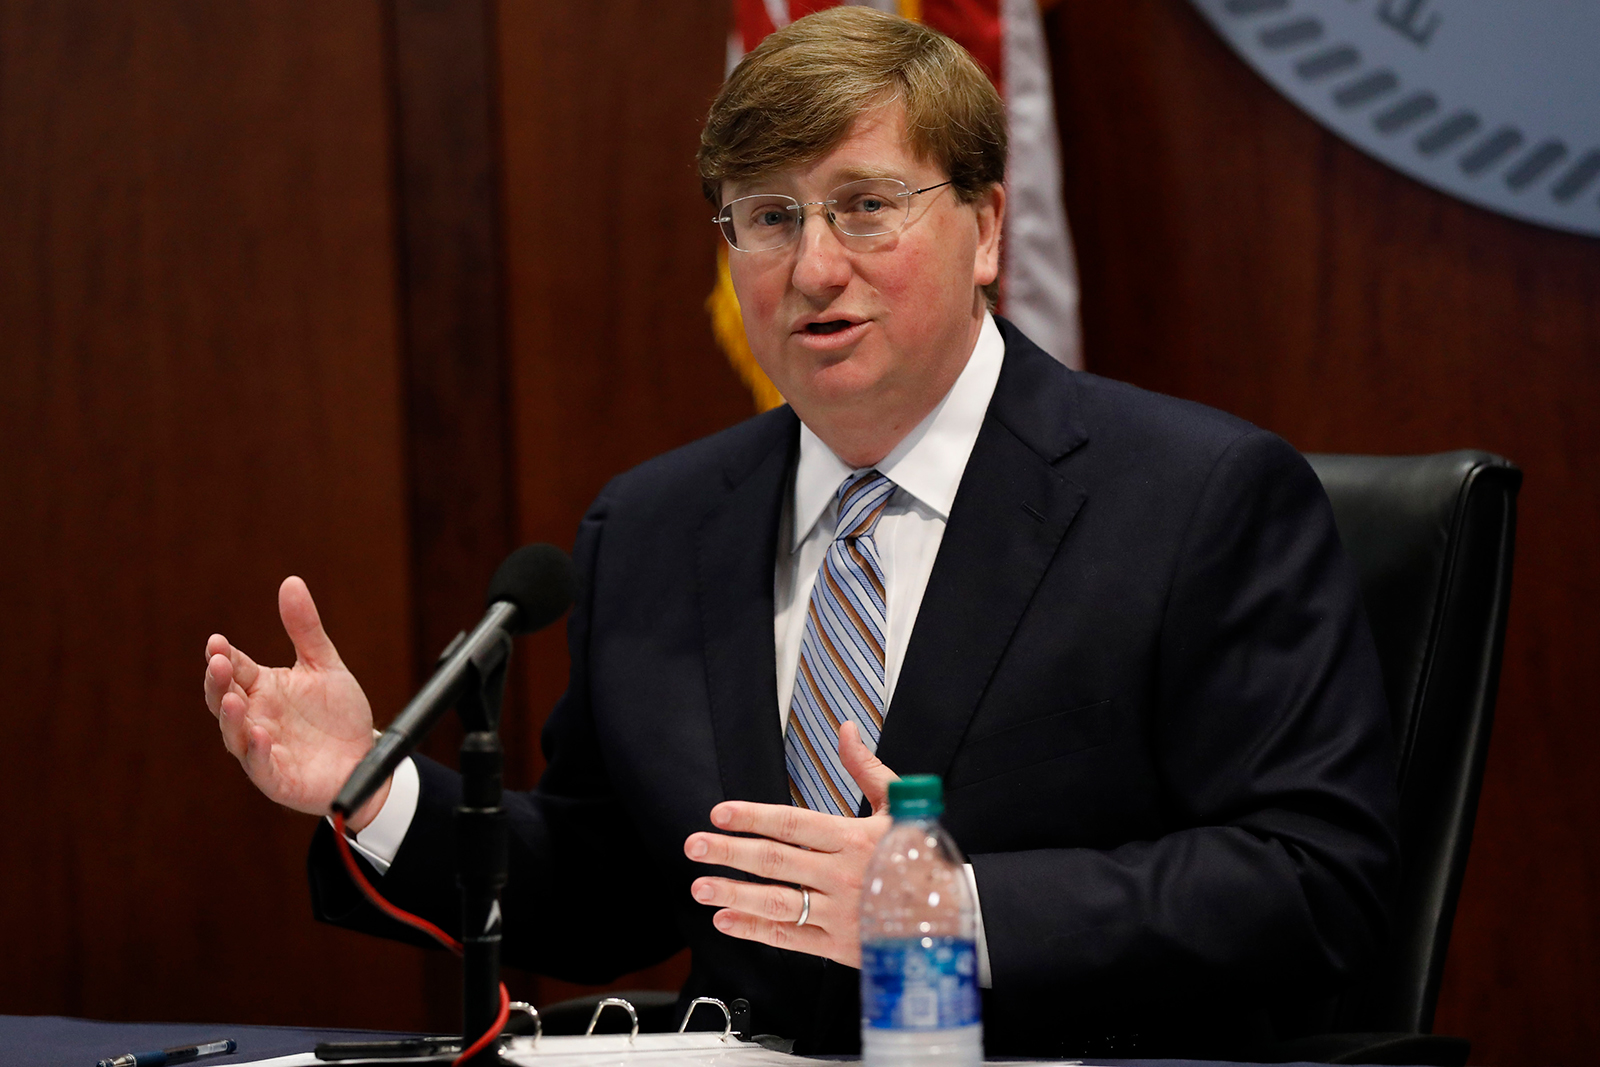 Mississippi Gov. Tate Reeves speaks about his executive order relaxing restrictions on nightclubs and bars during the daily Covid-19 news update in Jackson, Mississippi, on June 10.